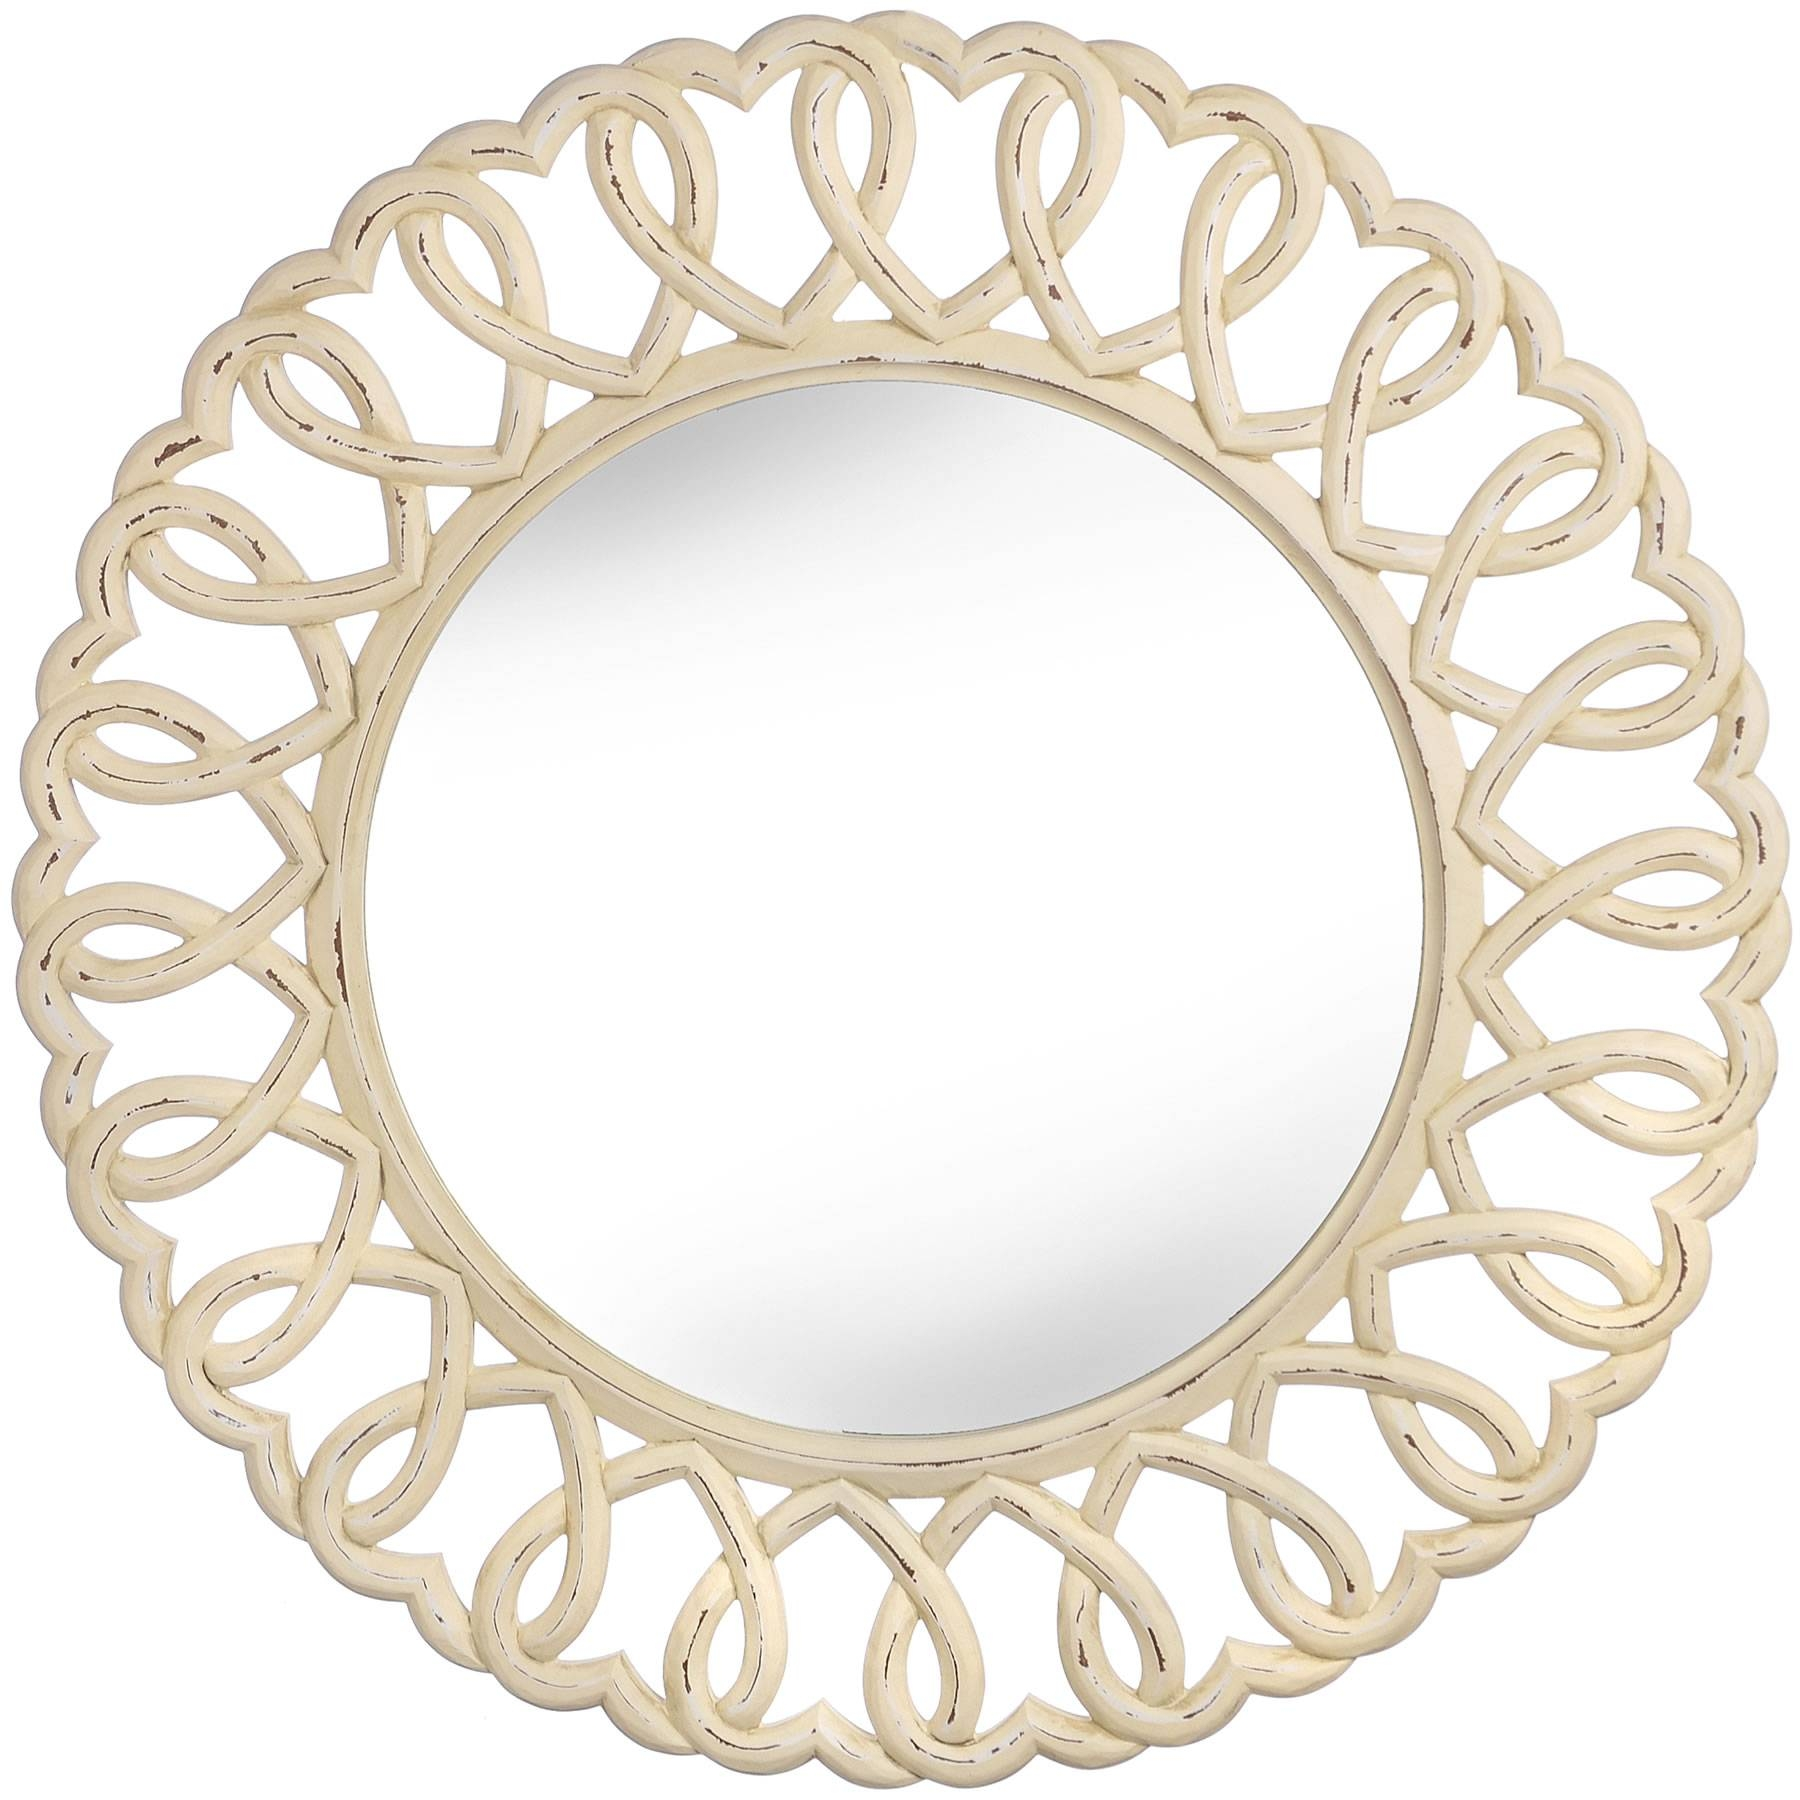 Olivia Heart Wall Mirror, Stunning Large Mirror 90Cm, Round Wall Within Heart Wall Mirrors (View 18 of 25)